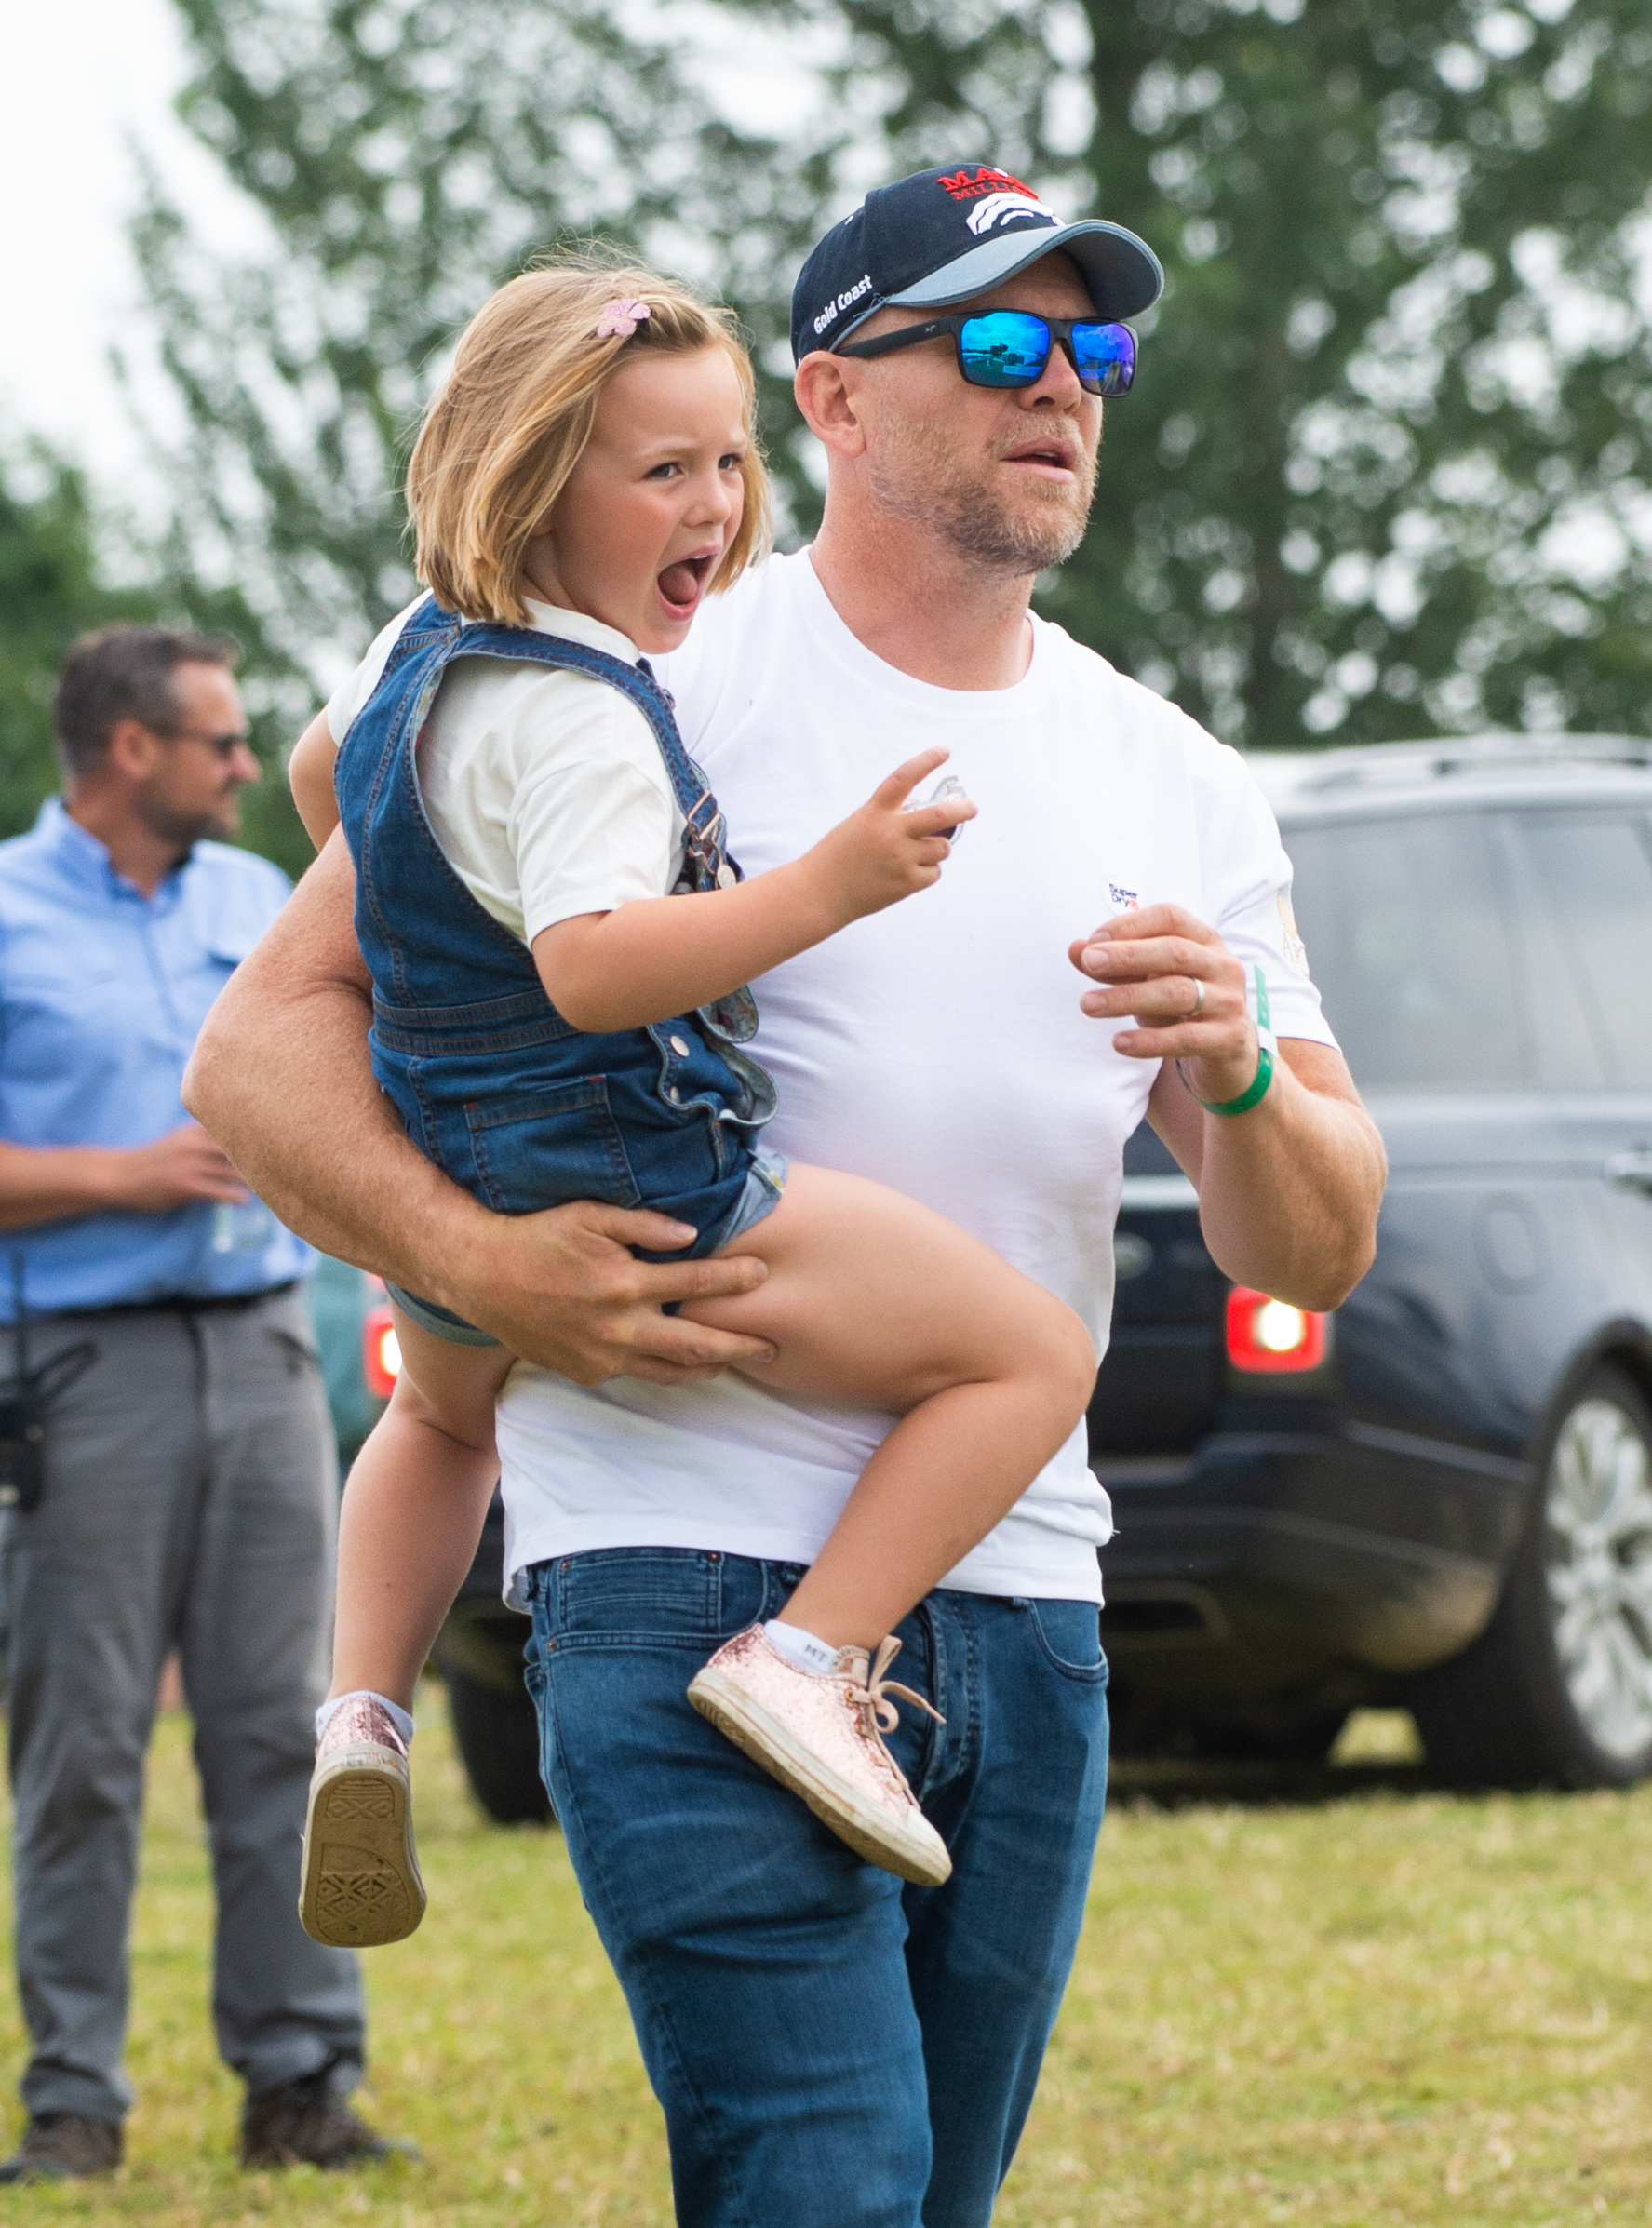 Mia Tindall and Mike Tindall